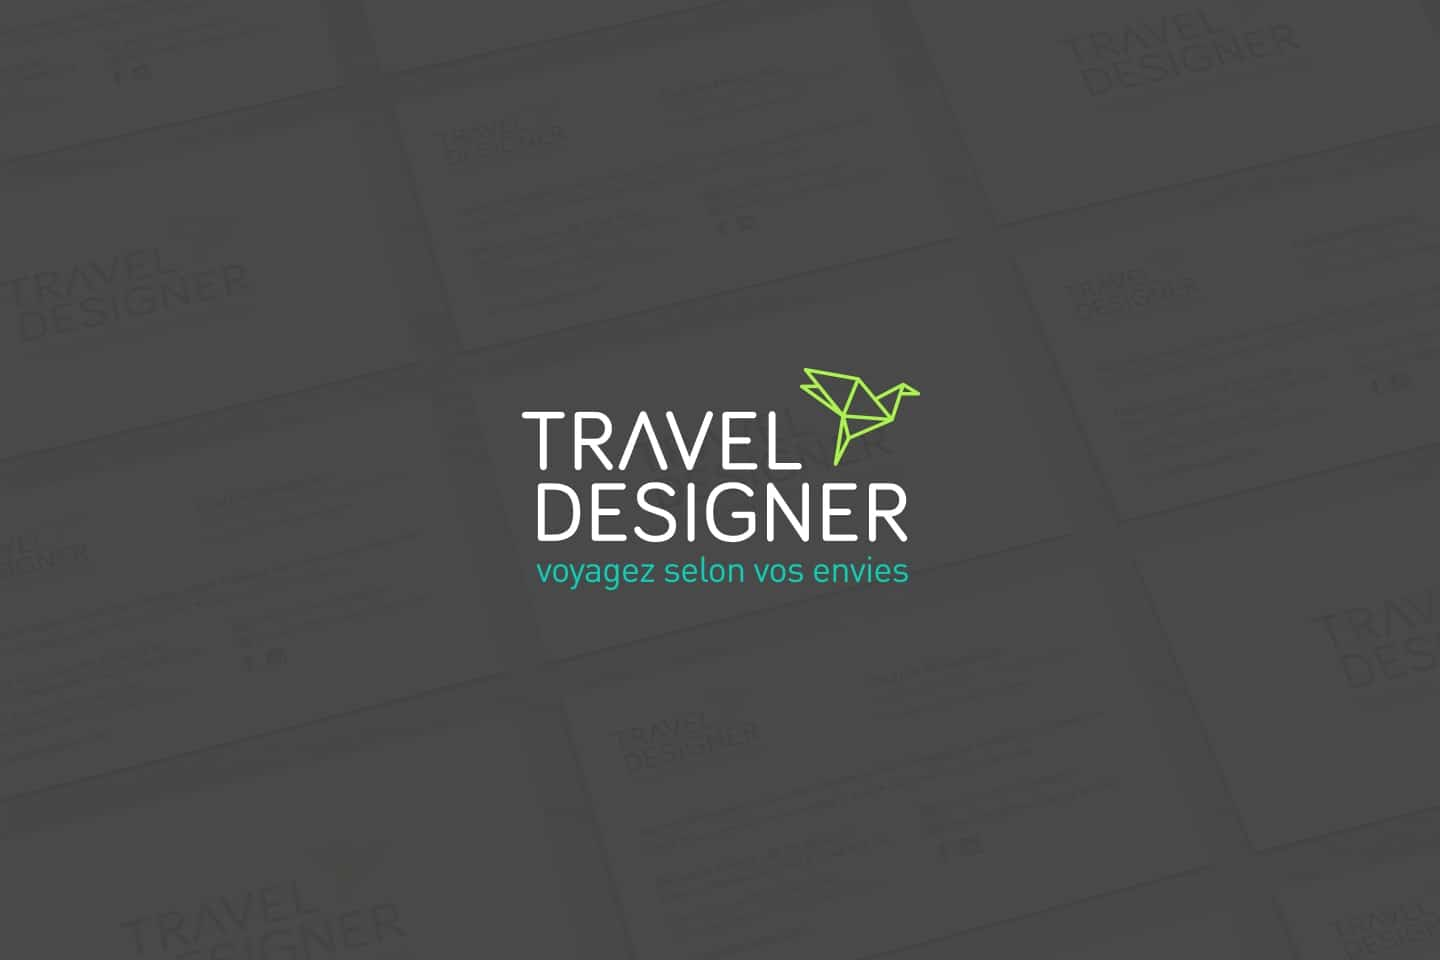 Travel designer - Graphic design